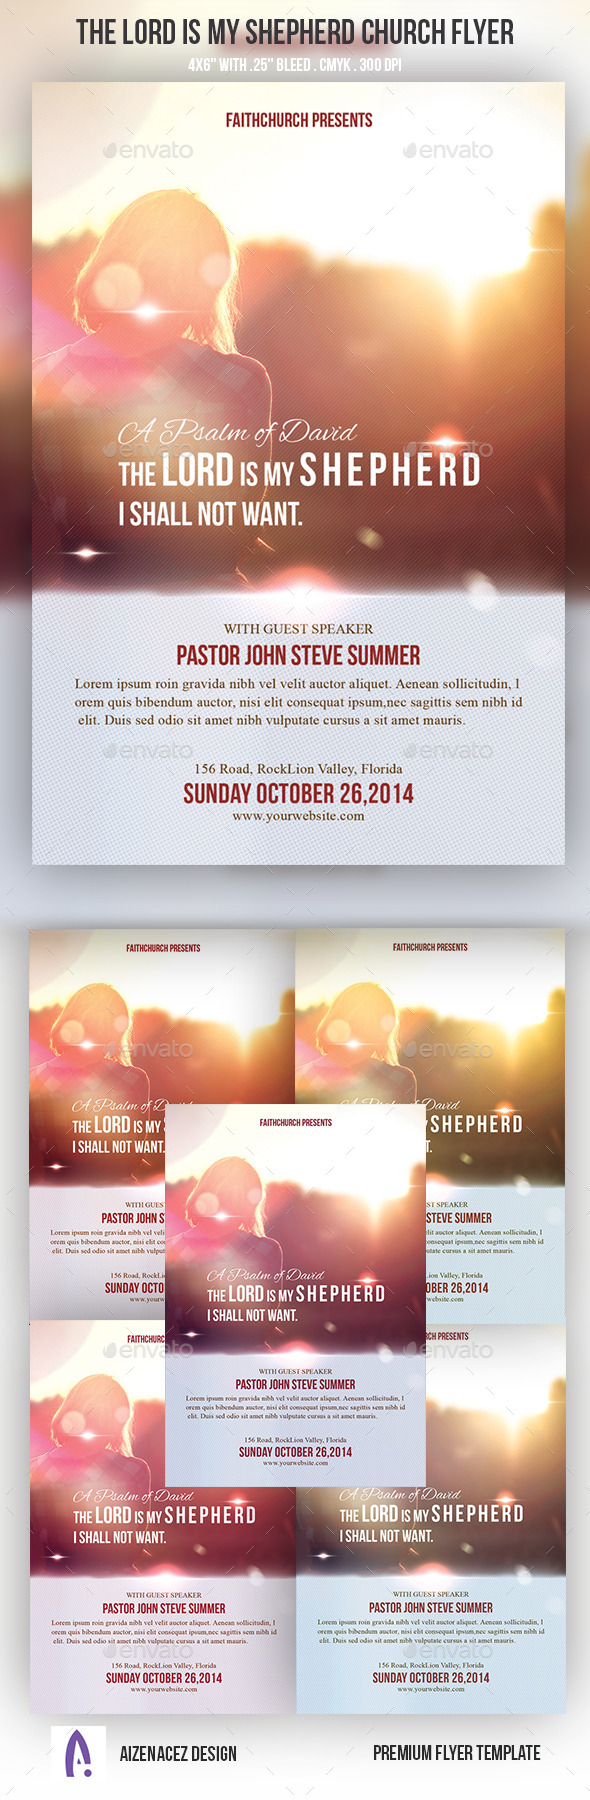 The Lord Is My Shepherd Church Flyer